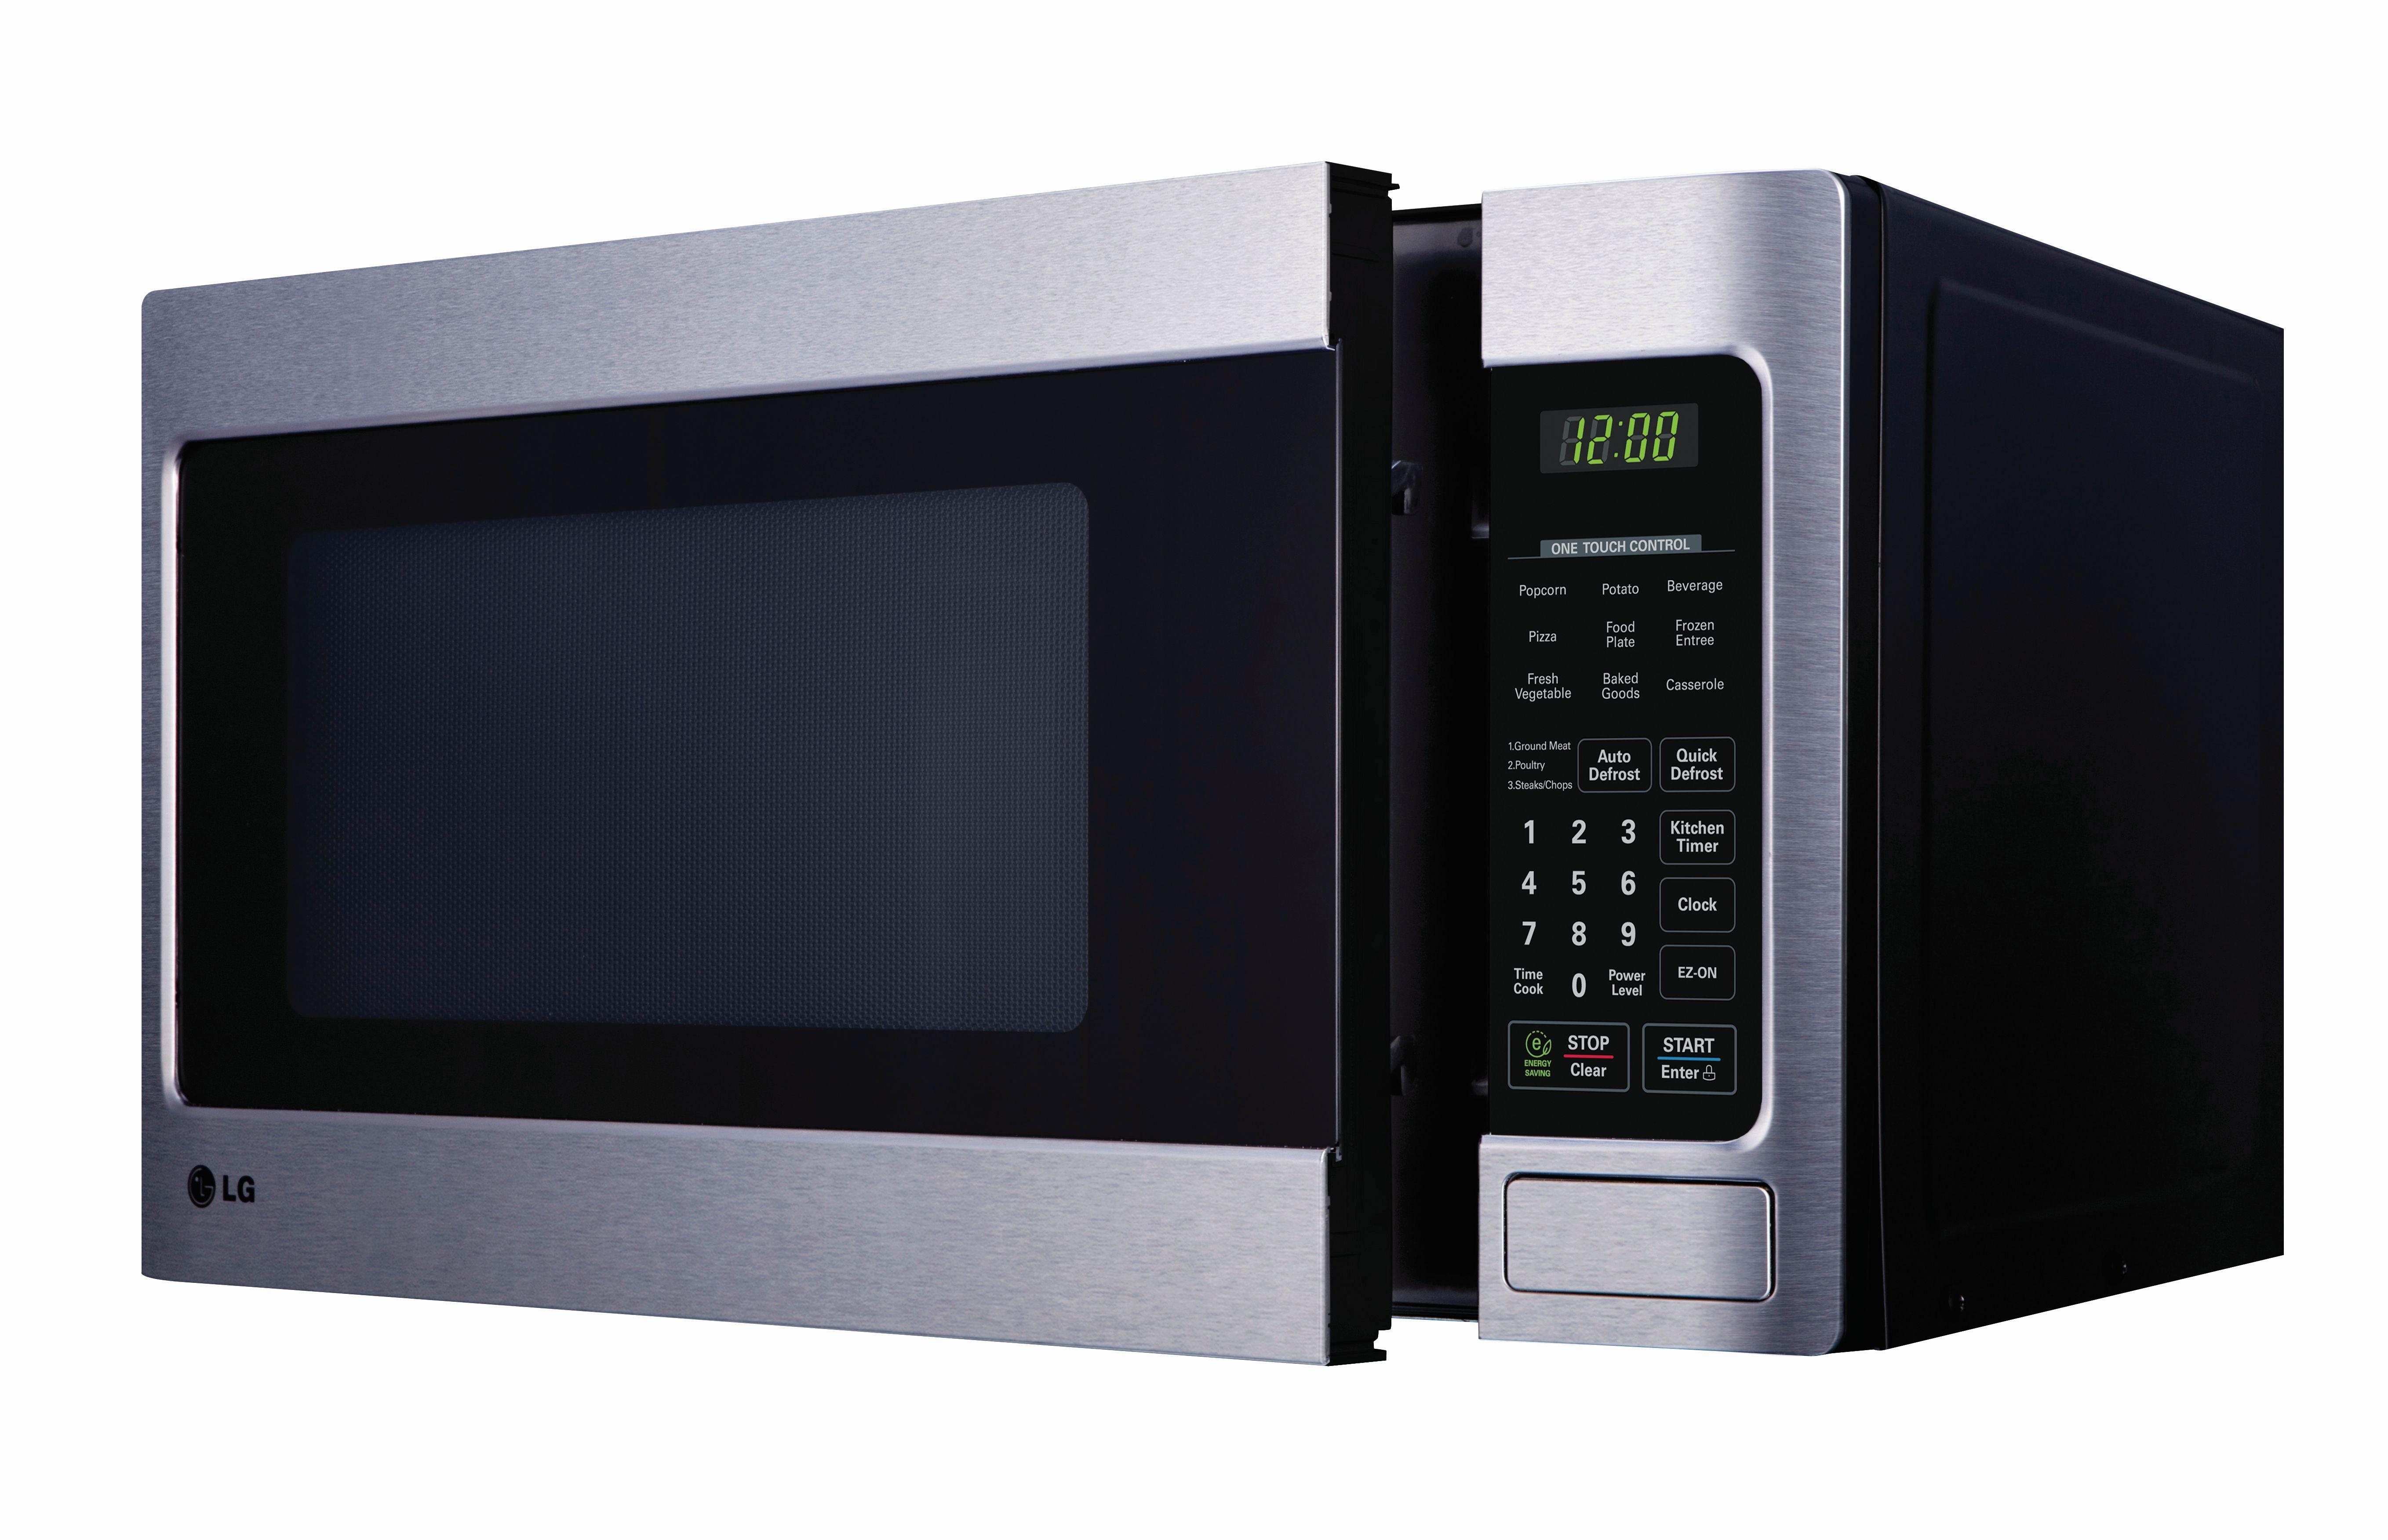 Lg Countertop Oven : LG LCS1112ST Countertop Microwave Oven 1000 Watt Stainless Steel Brand ...